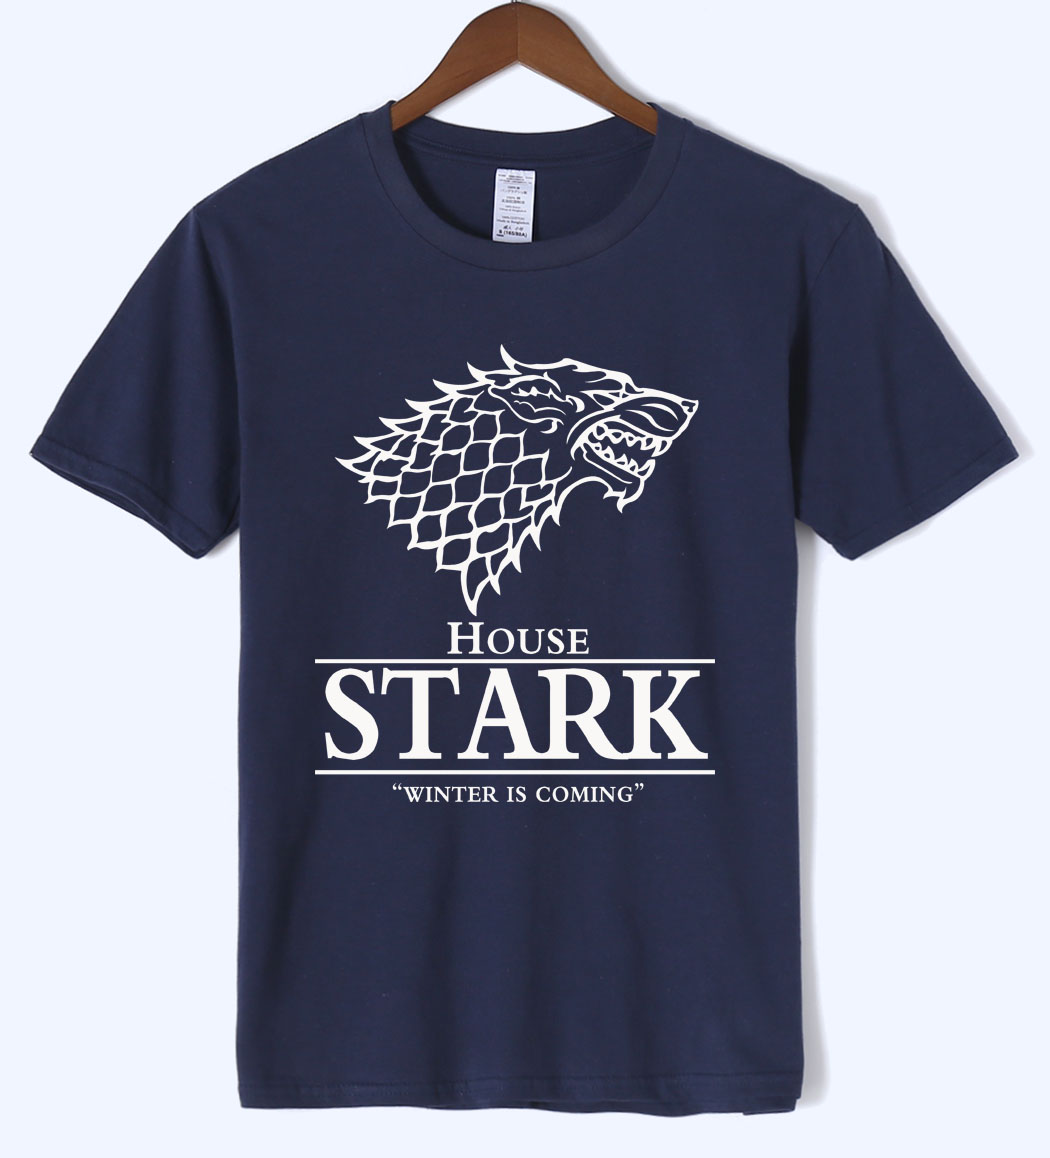 T-shirt 2018 summer House Stark printed mens T-shirts The Song of Ice and Fire Winter Is Coming t shirt men harajuku O-neck top